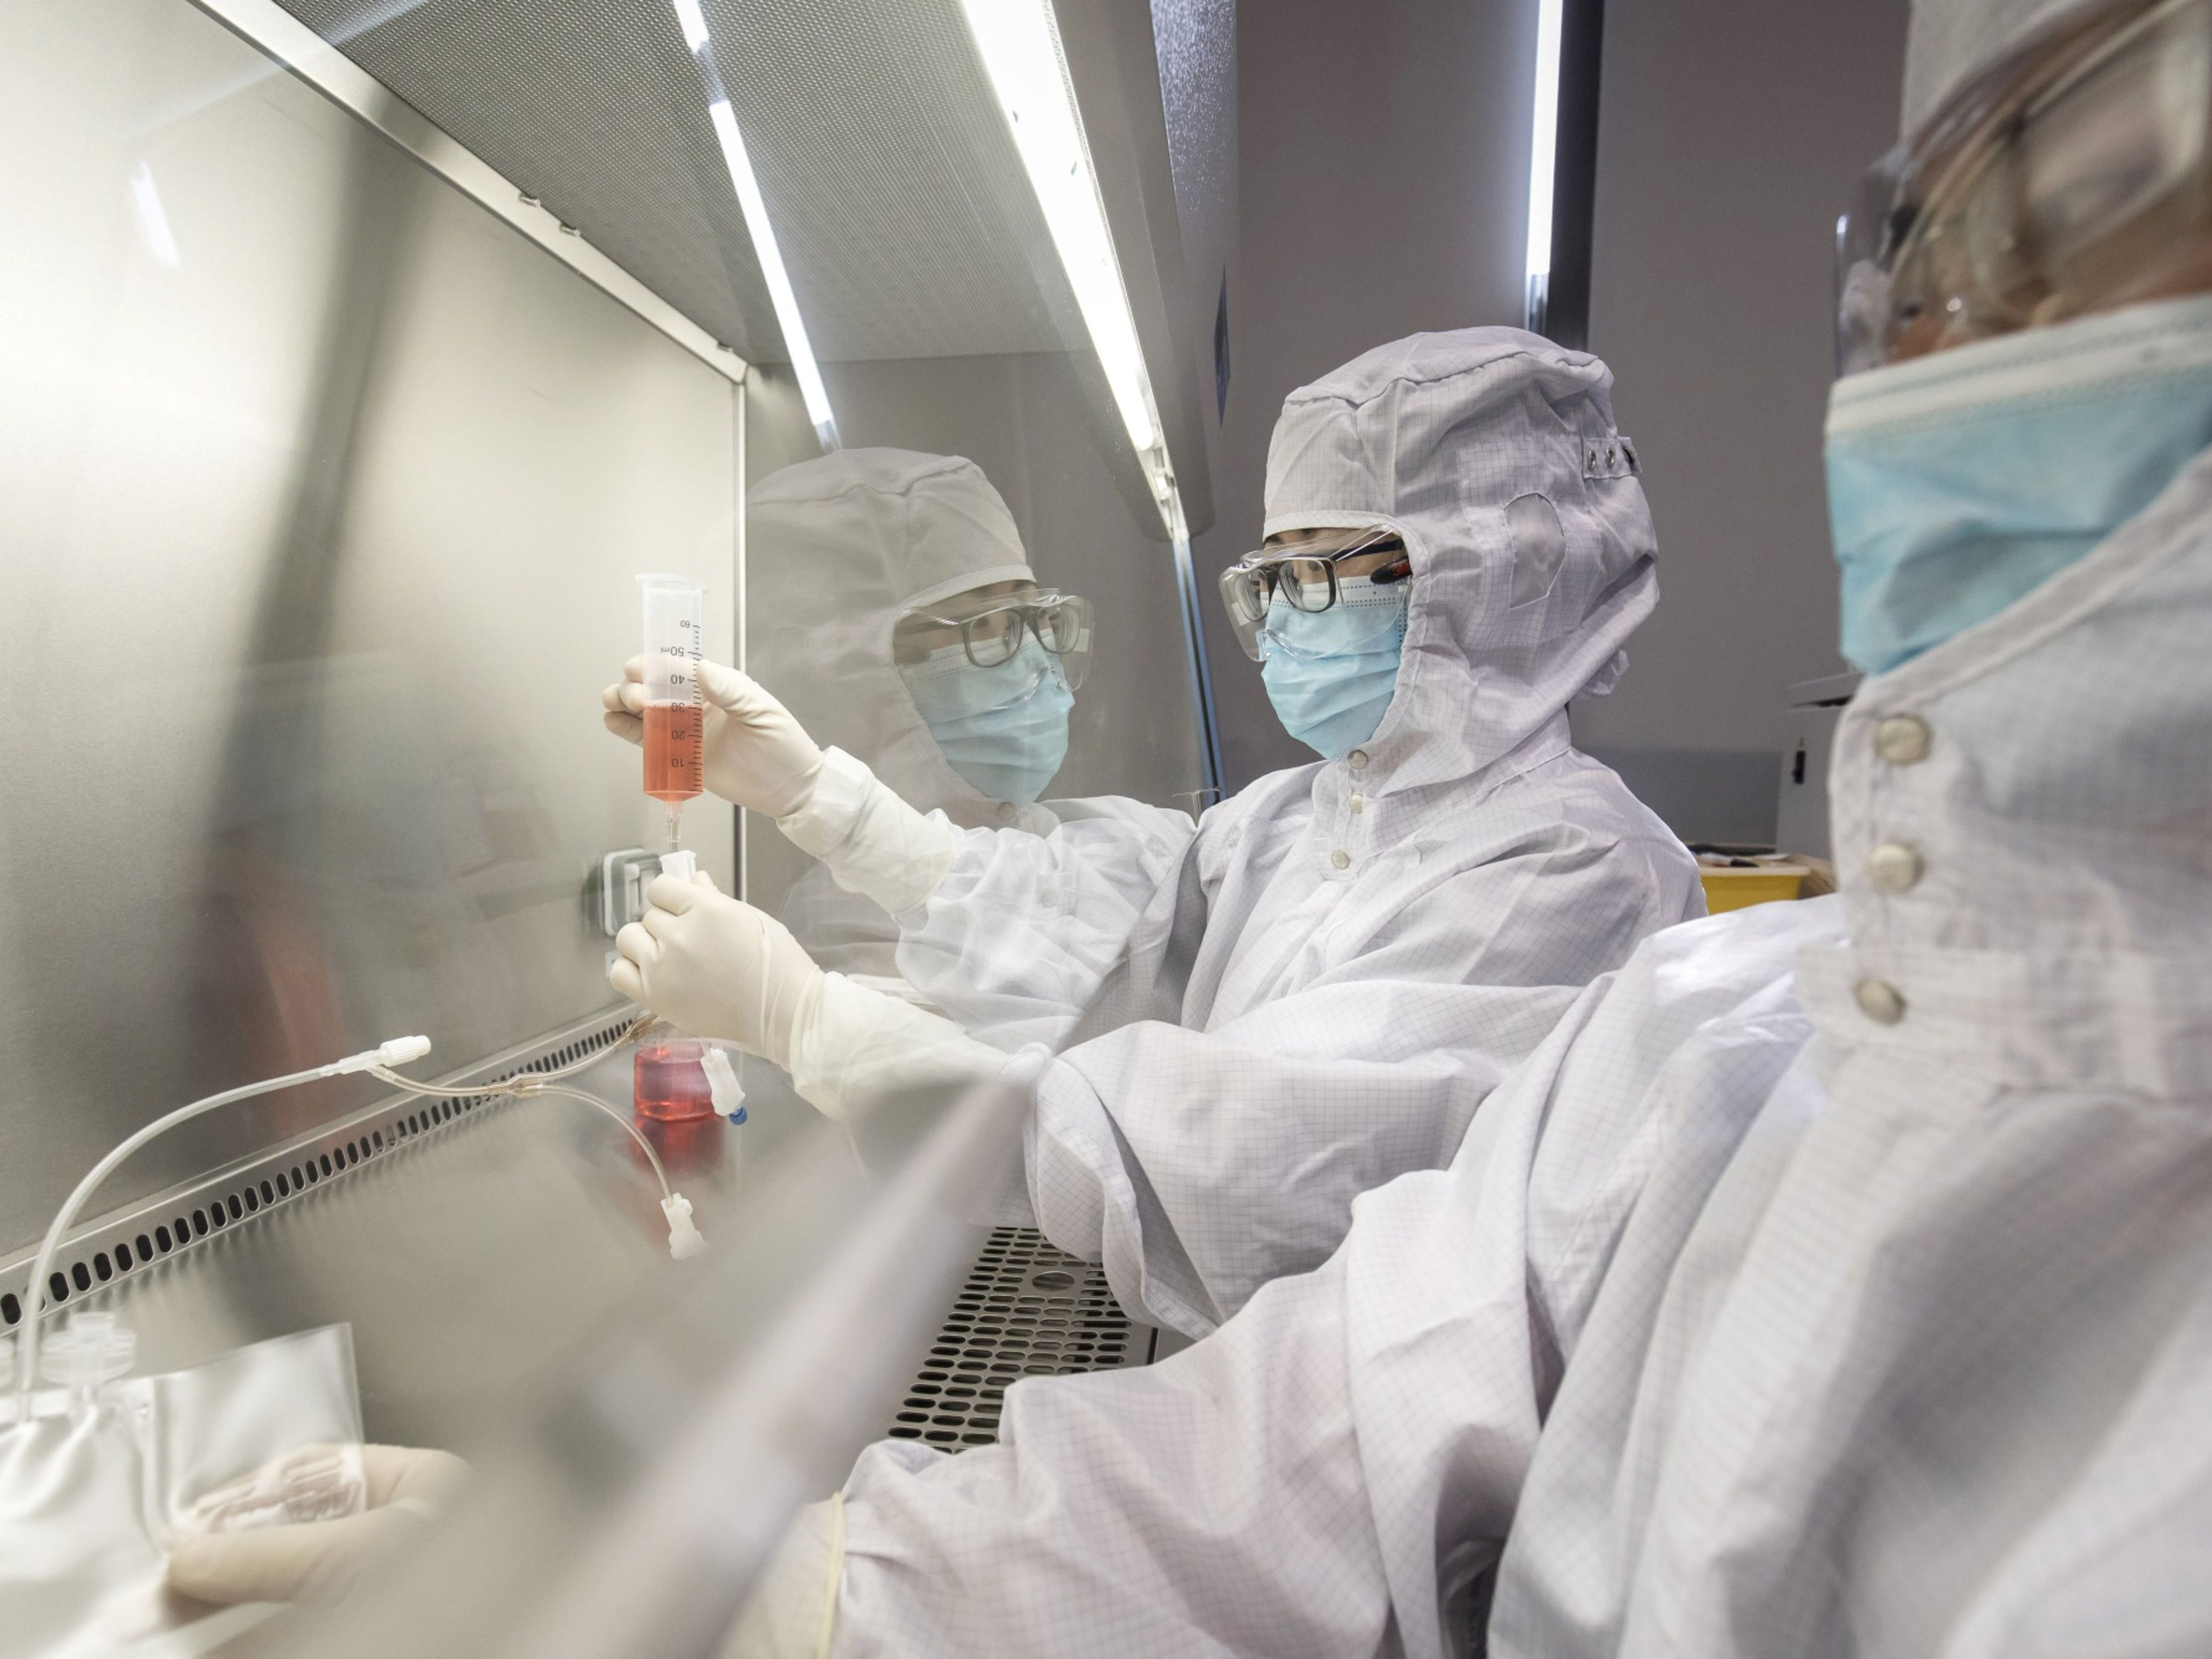 Despite Testing Improvements, U.S. Labs Face Endless Logistical Failures